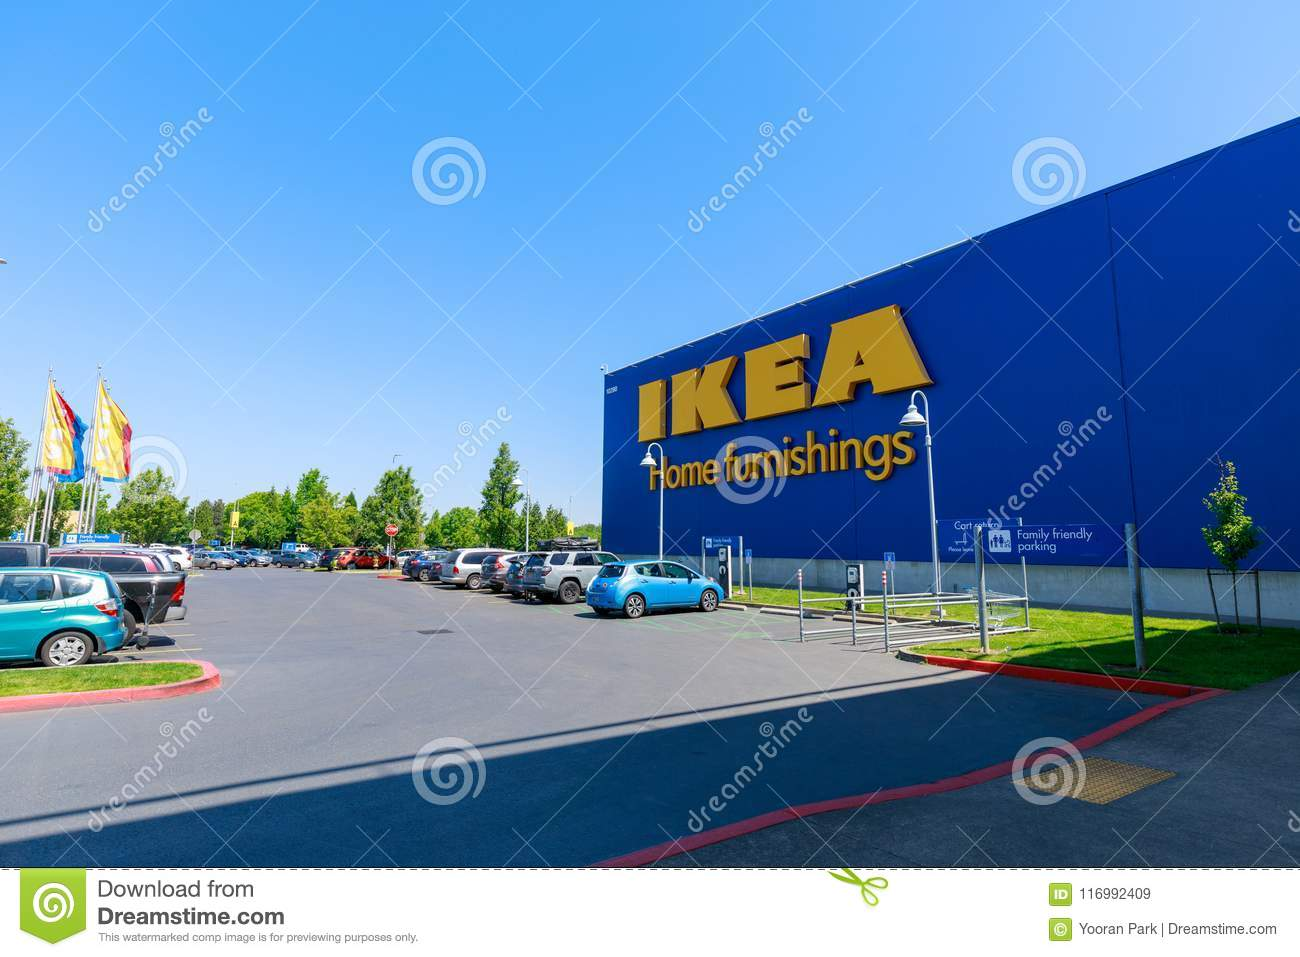 Facade of IKEA Store in Portland, Oregon. IKEA is the world s largest furniture retailer and sells ready to assemble furniture.